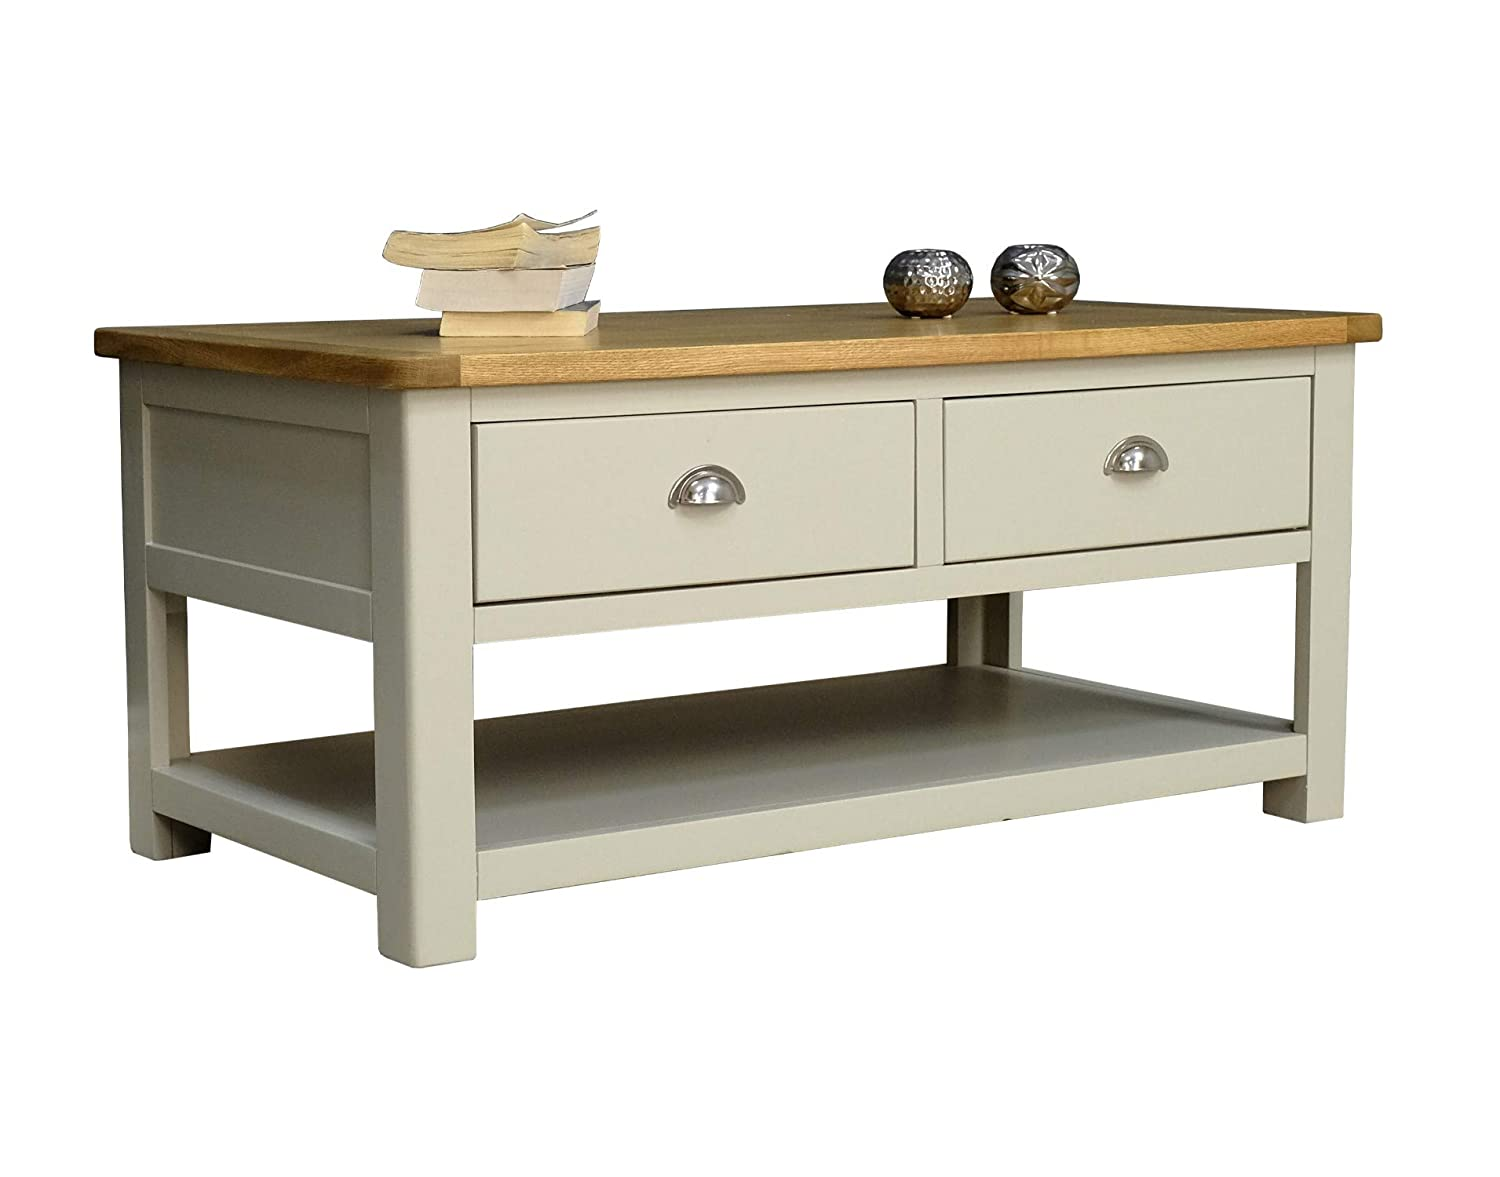 Aspen painted oak sage grey 2 drawer coffee table storage with shelf living room furniture amazon co uk kitchen home